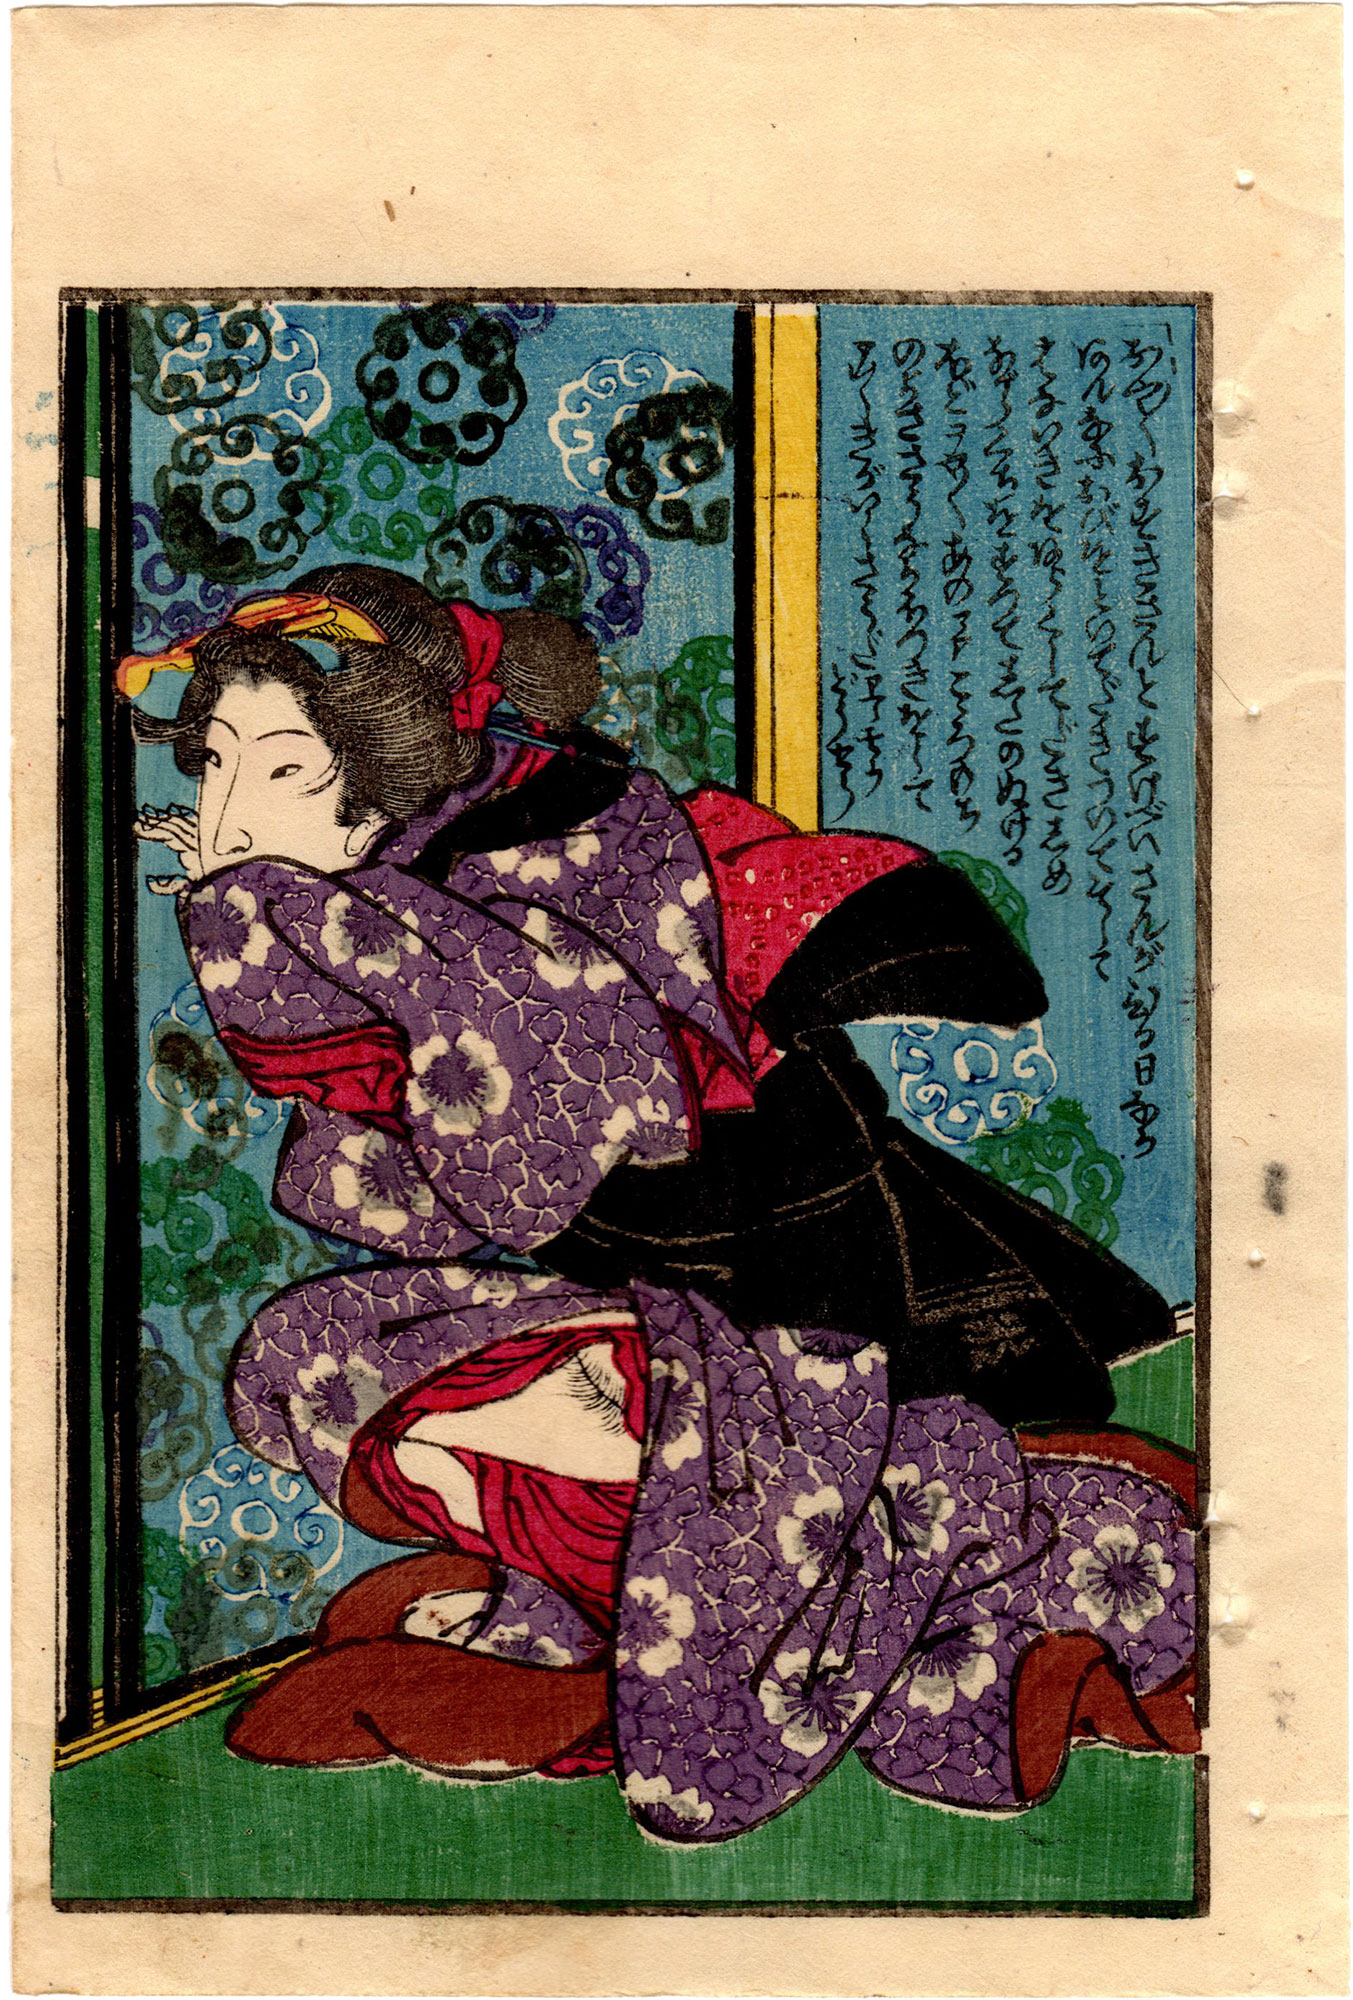 SCENERY OF SPRING: DOUBLE CHERRY BLOSSOMS 01 (Utagawa Hiroshige)